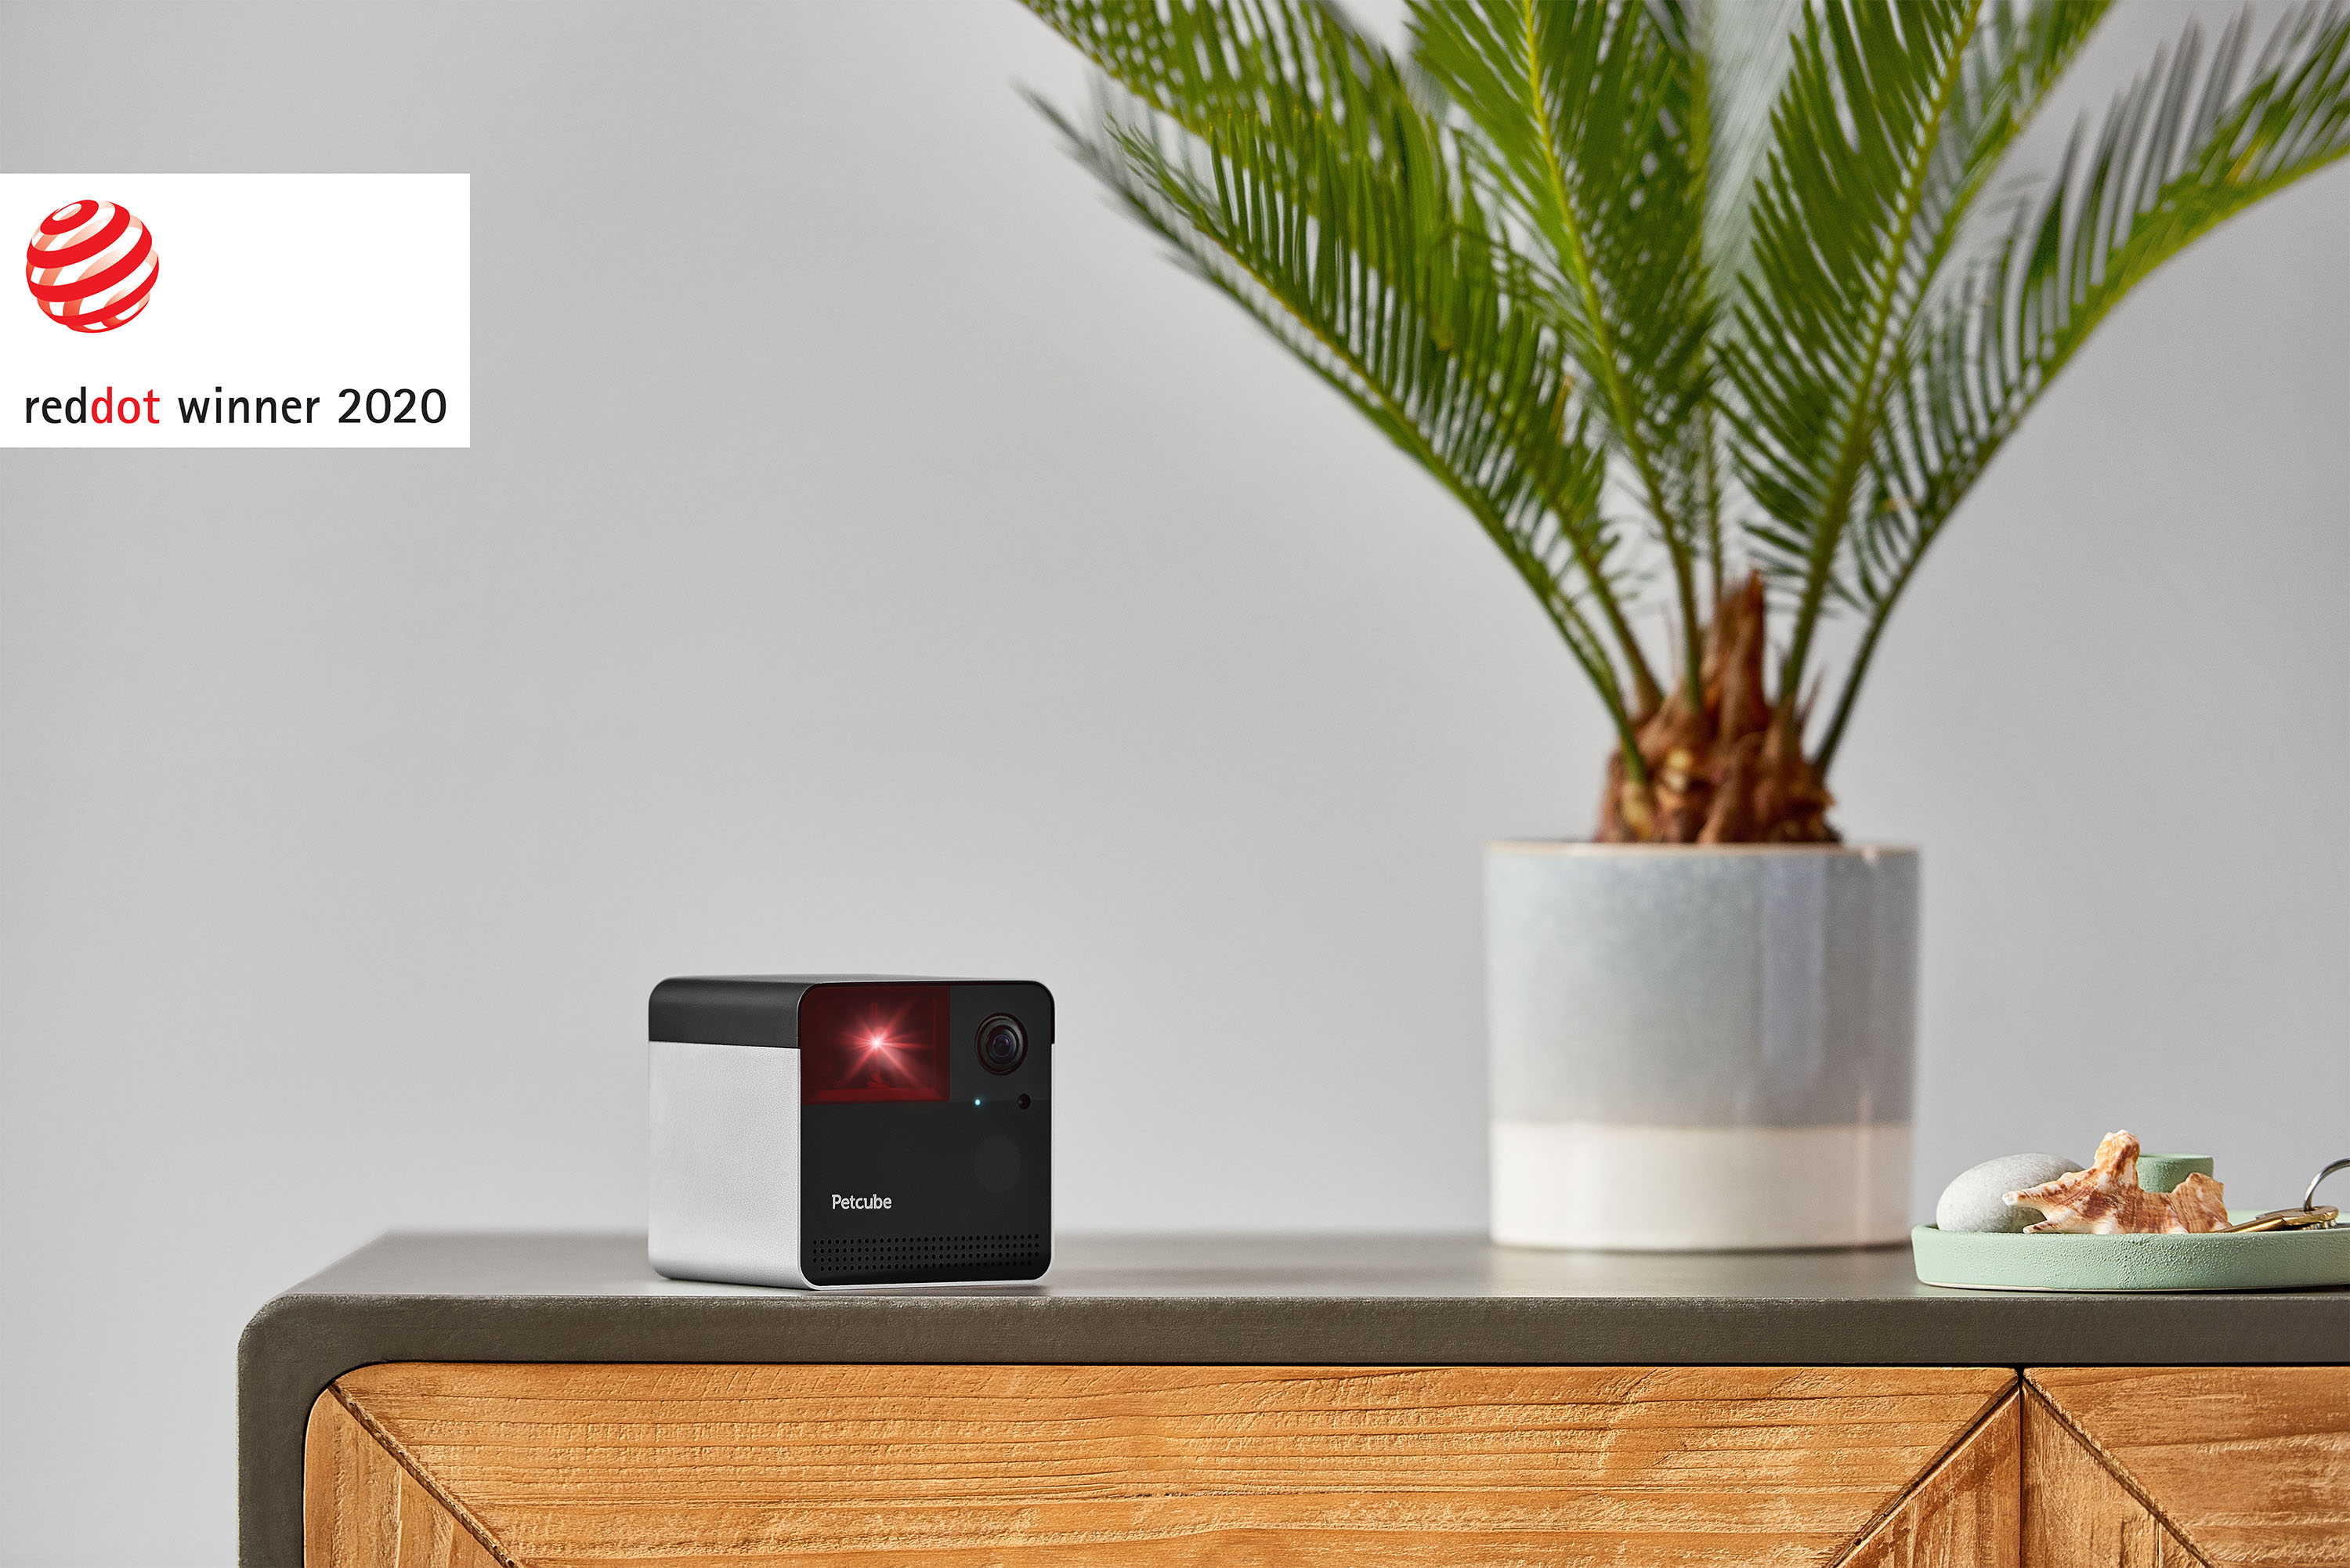 Petcube Play 2 pet camera with a built-in laser toy